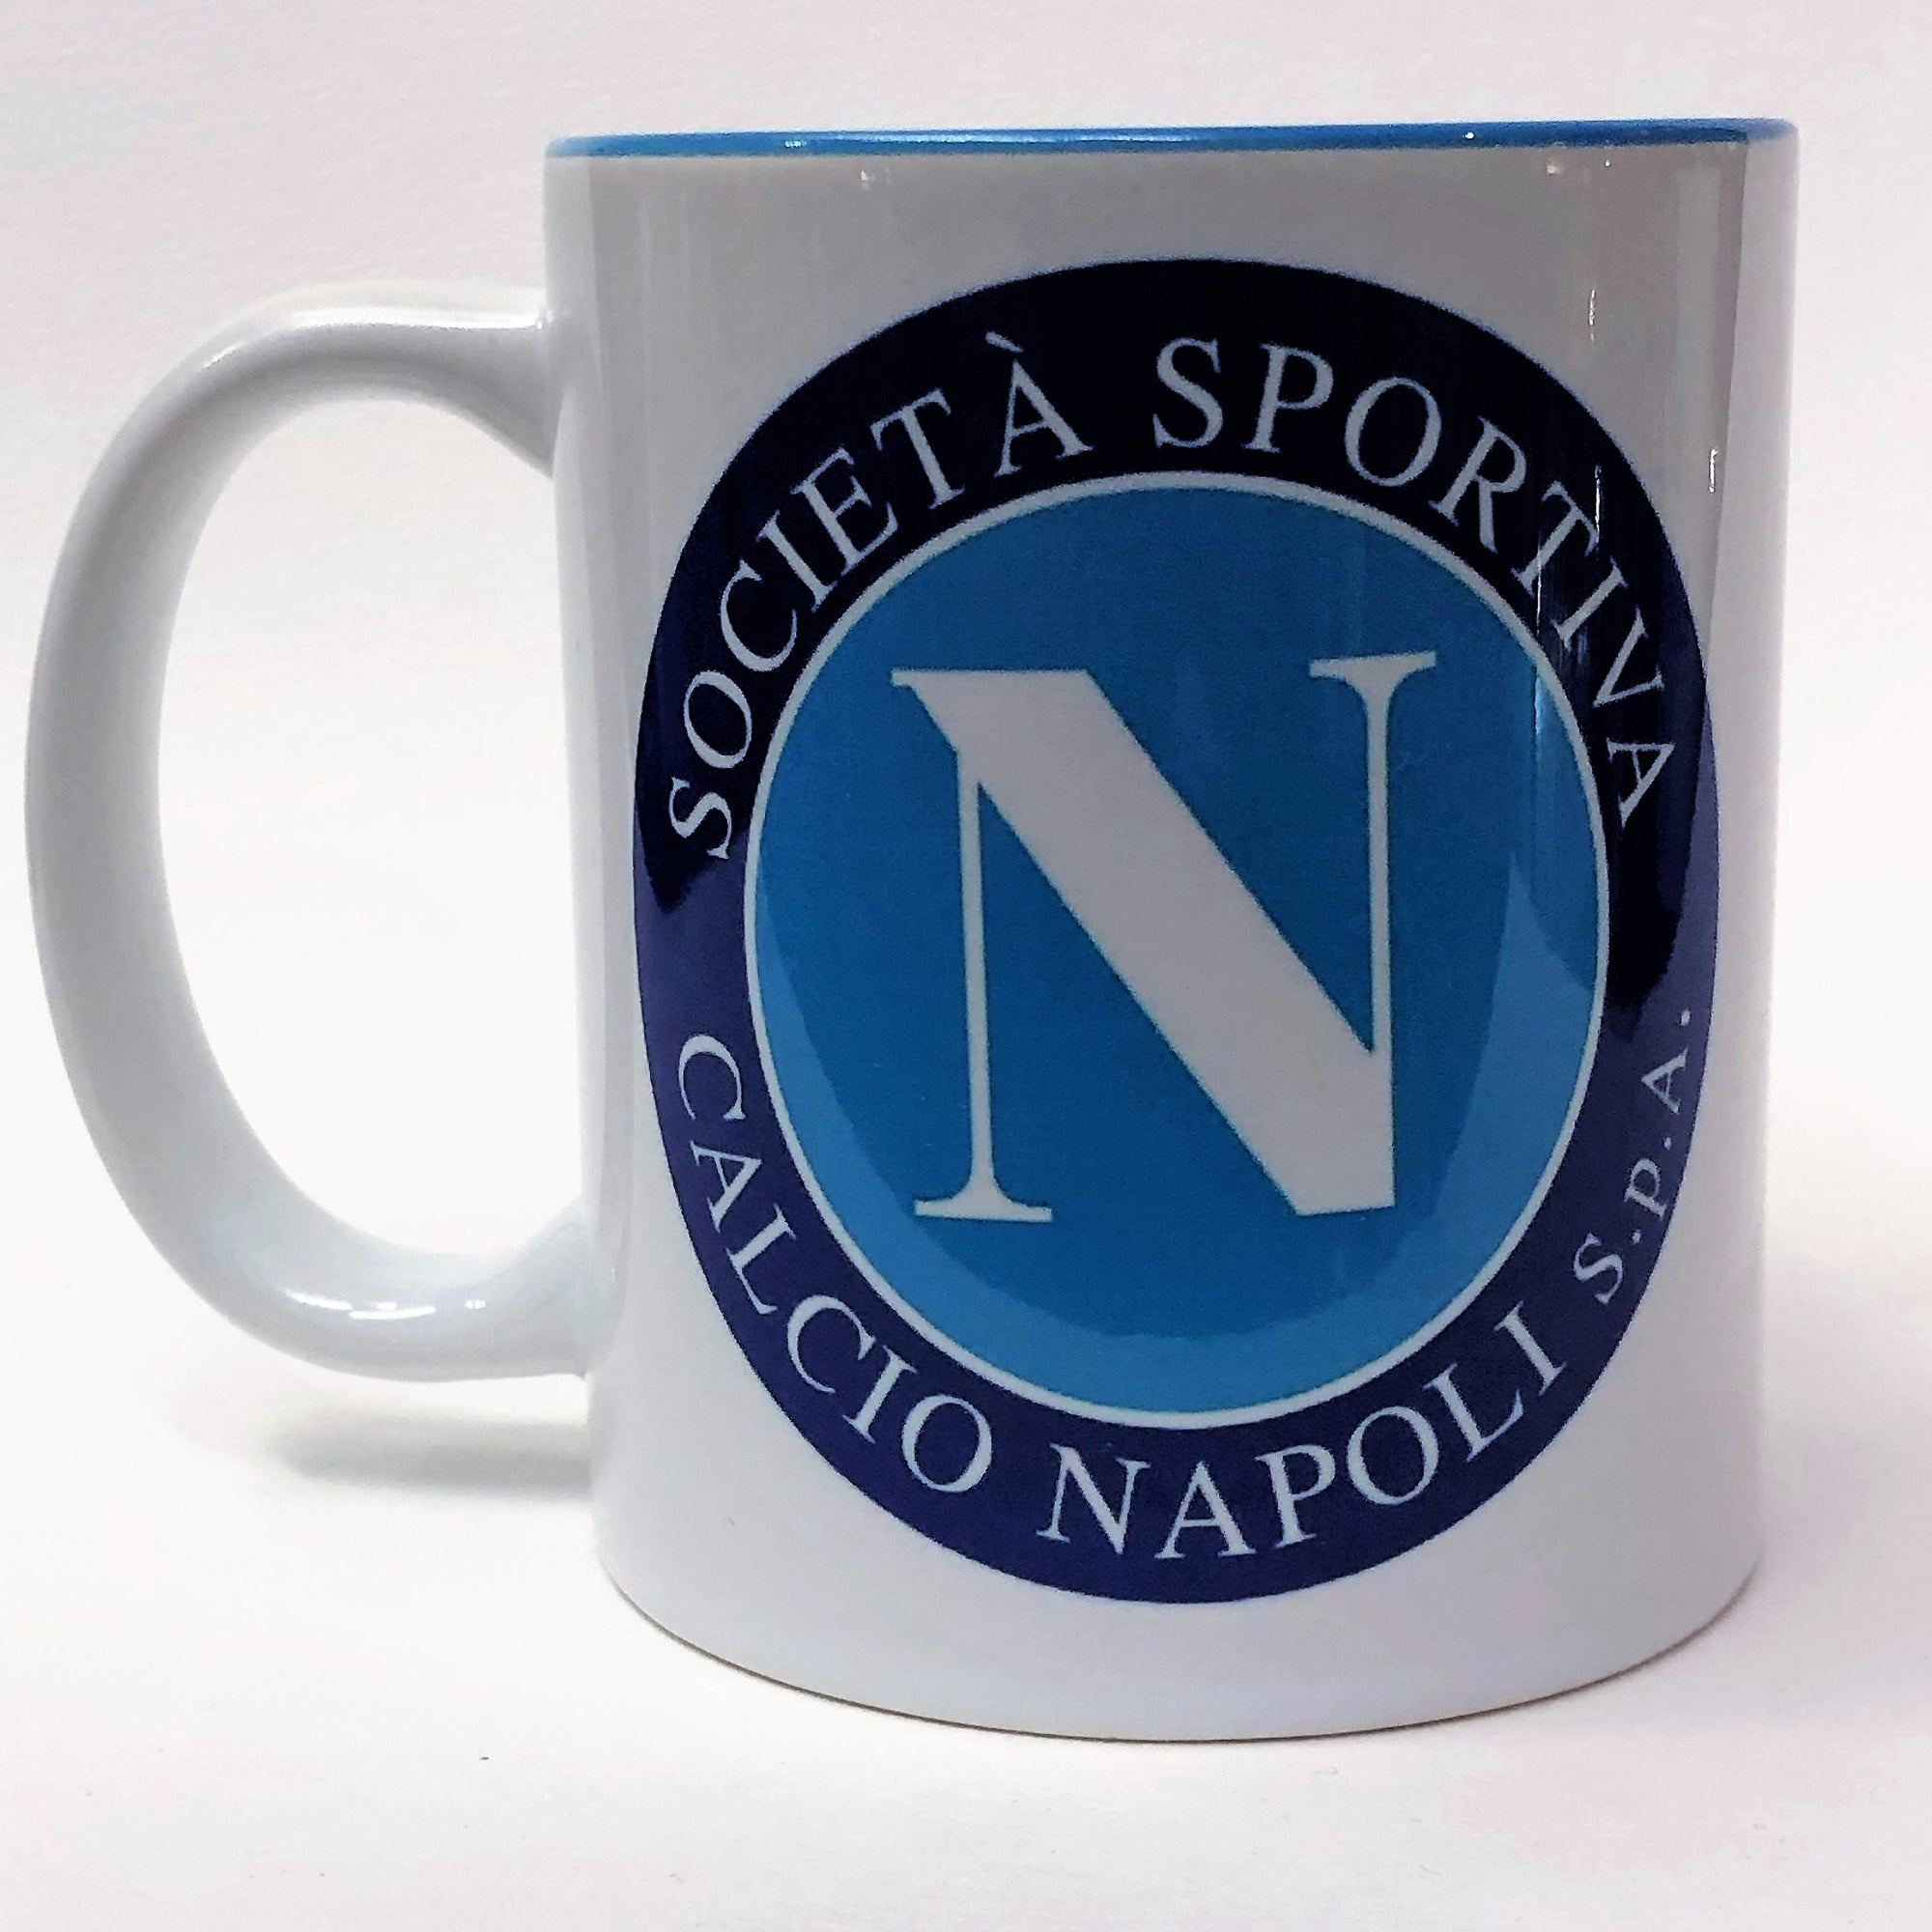 Napoli Coffee Mug